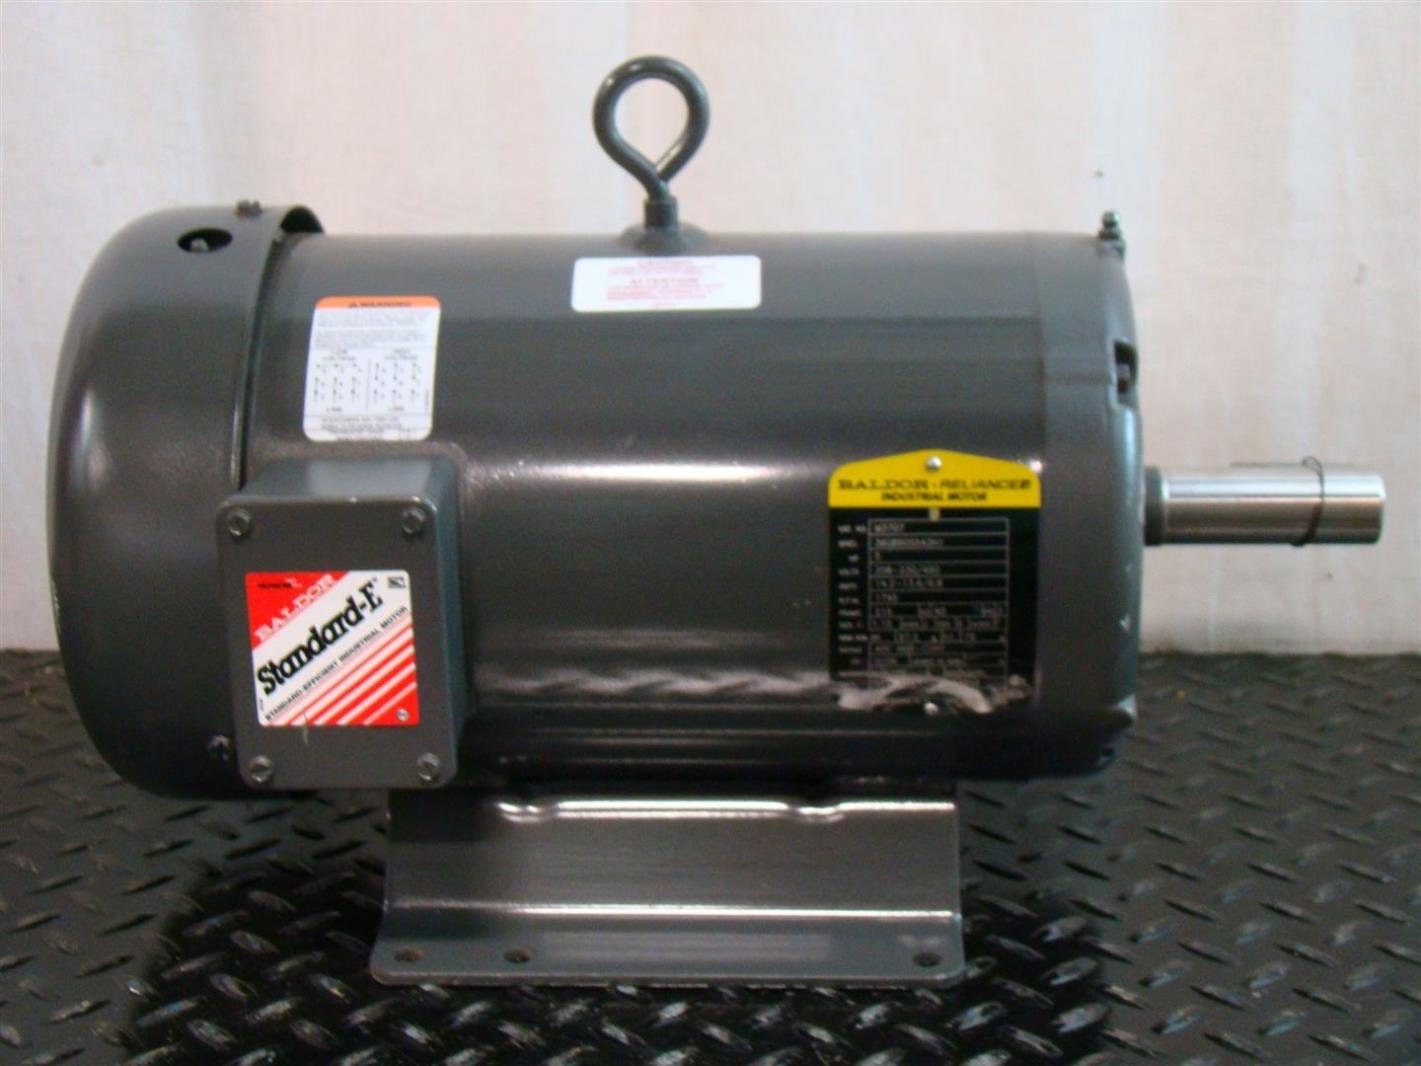 baldor reliancer industrial motor 5hp ph3 1745rpm 230 460v